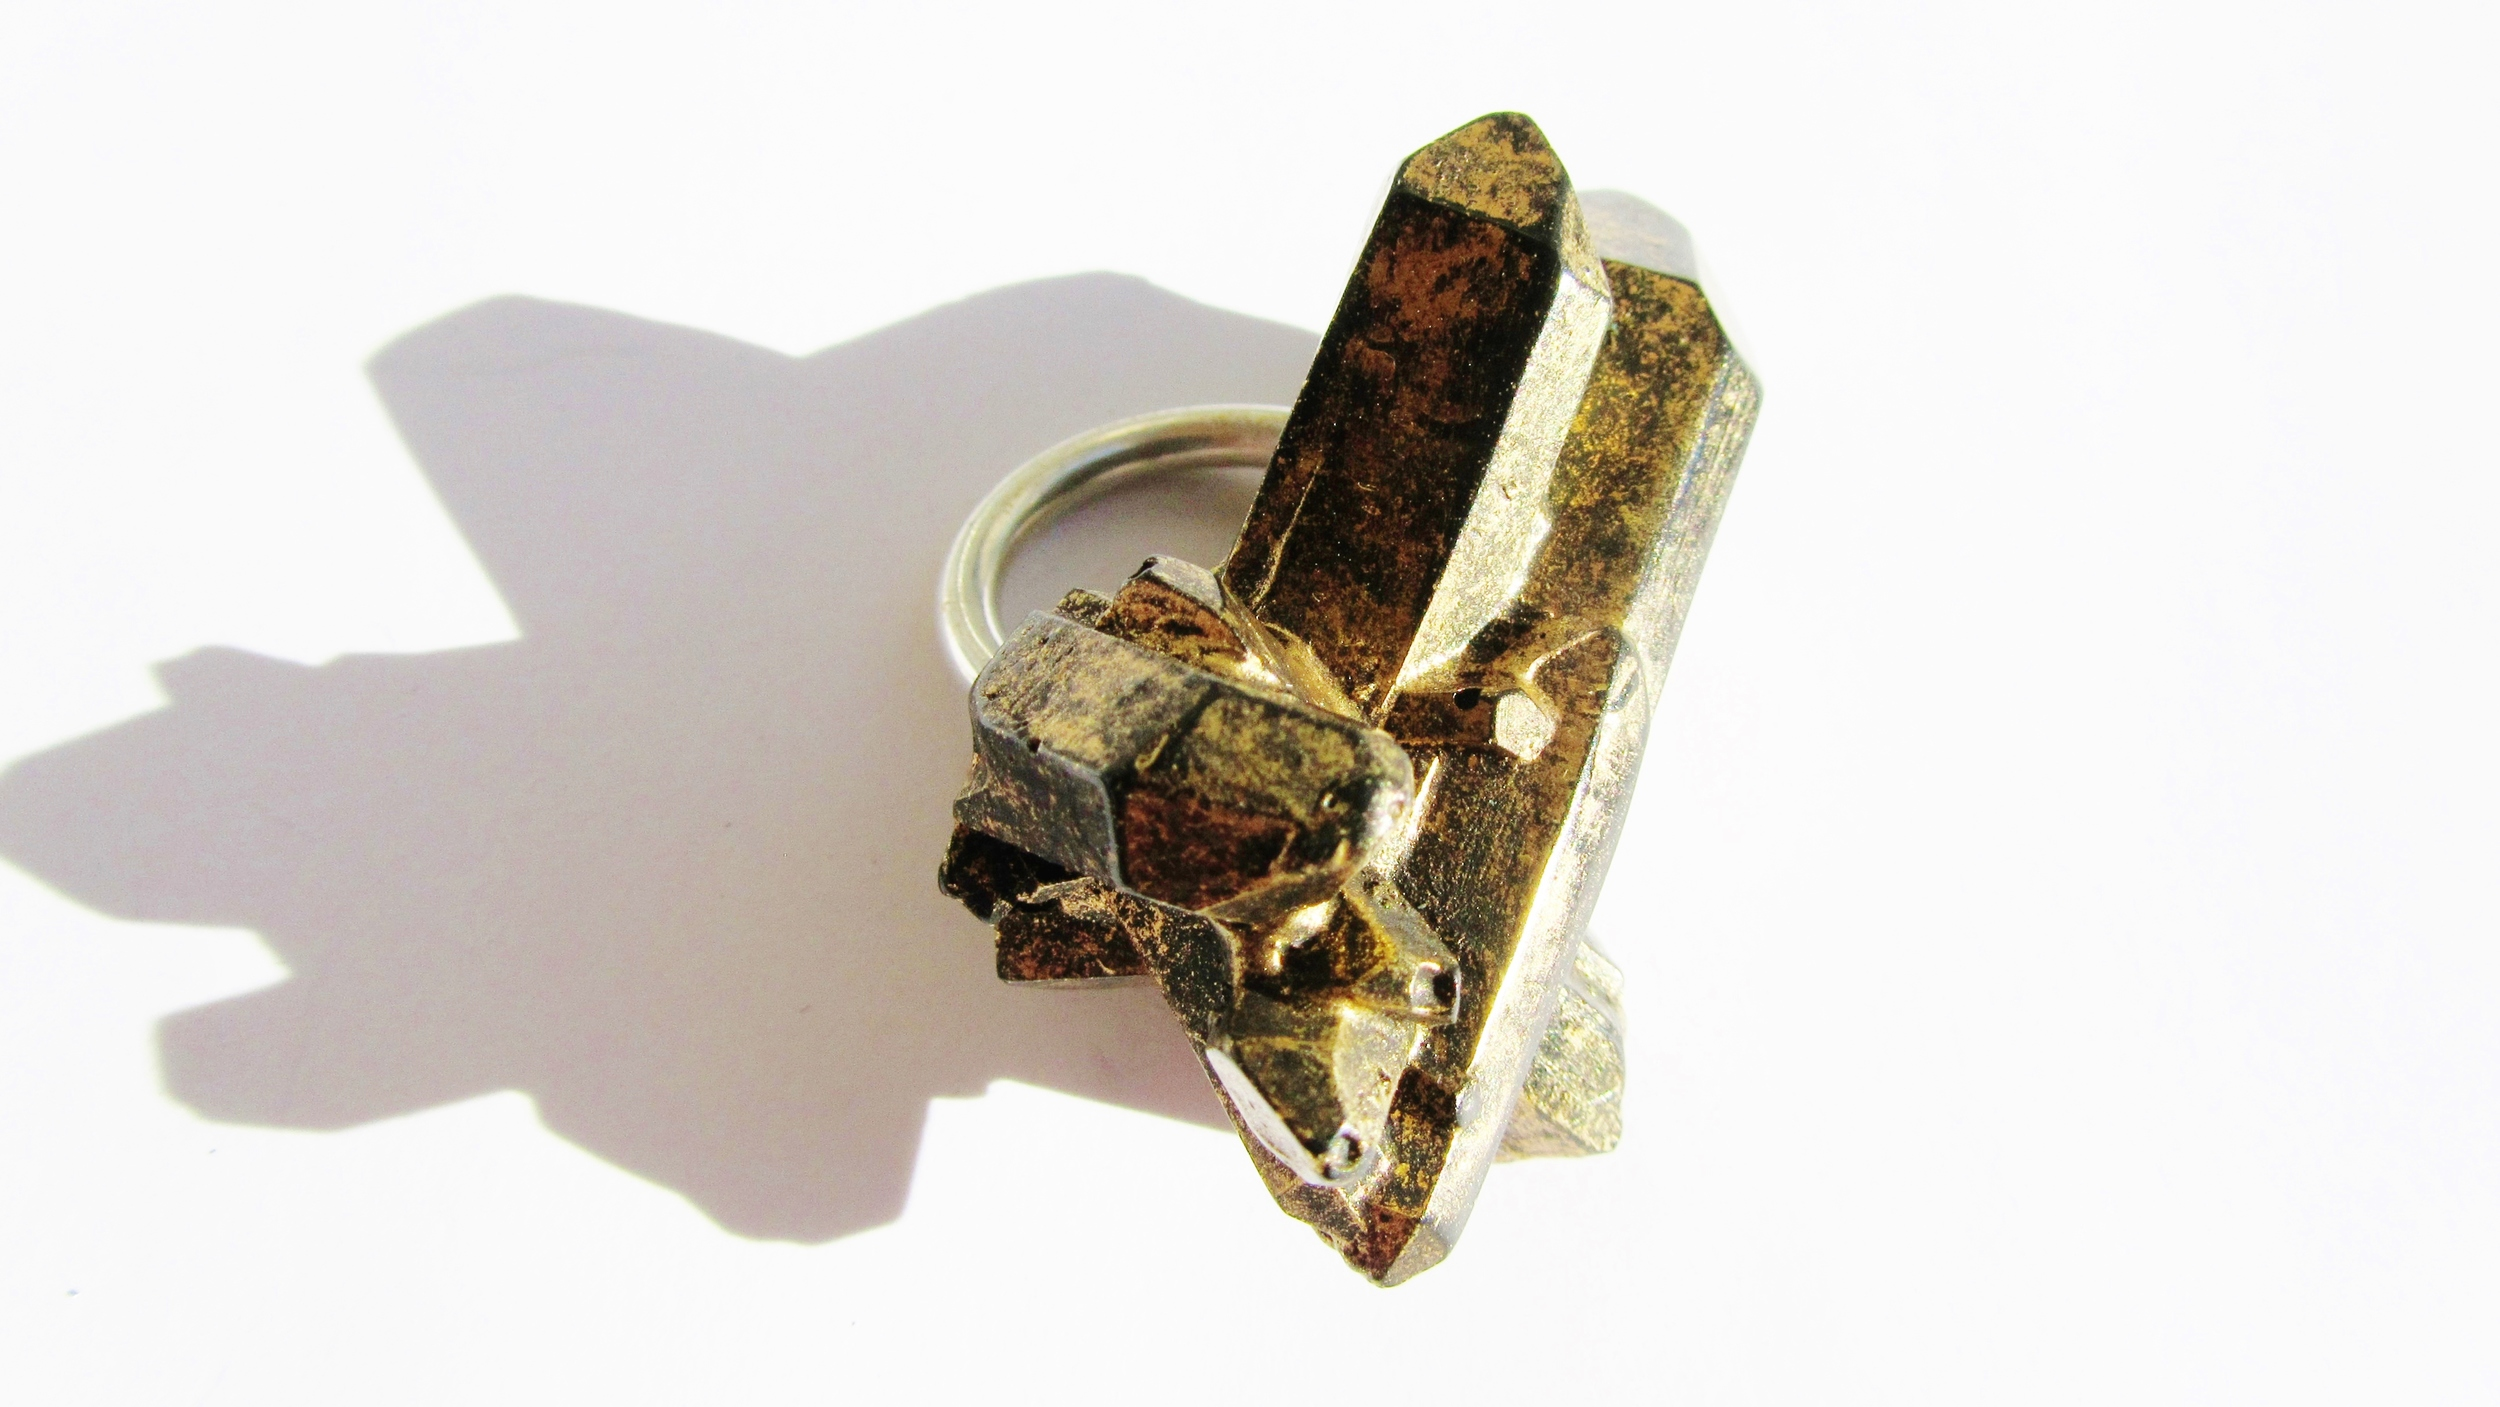 Gold Shard Ring. 2014 One of the pieces worn by Die Hexen in her performance for SpaceLife at Manchester Central Library. The Gold lustre glinting under the light from lunar shadows.